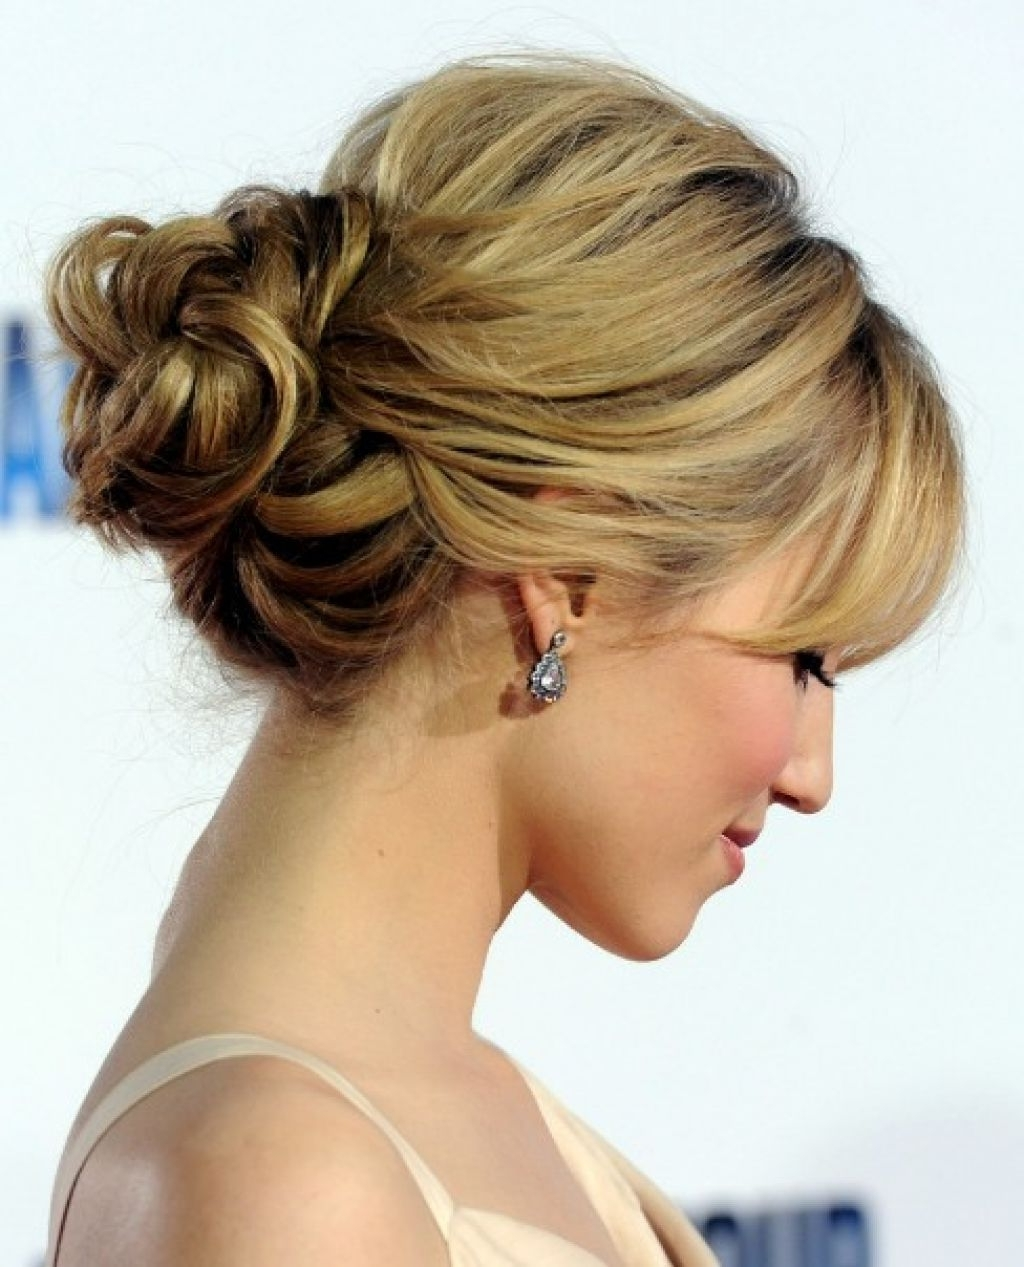 Romantic Loose Low Bun Updo For Wedding From Dianna Agron | Wedding Intended For Low Bun Updo Hairstyles (View 13 of 15)